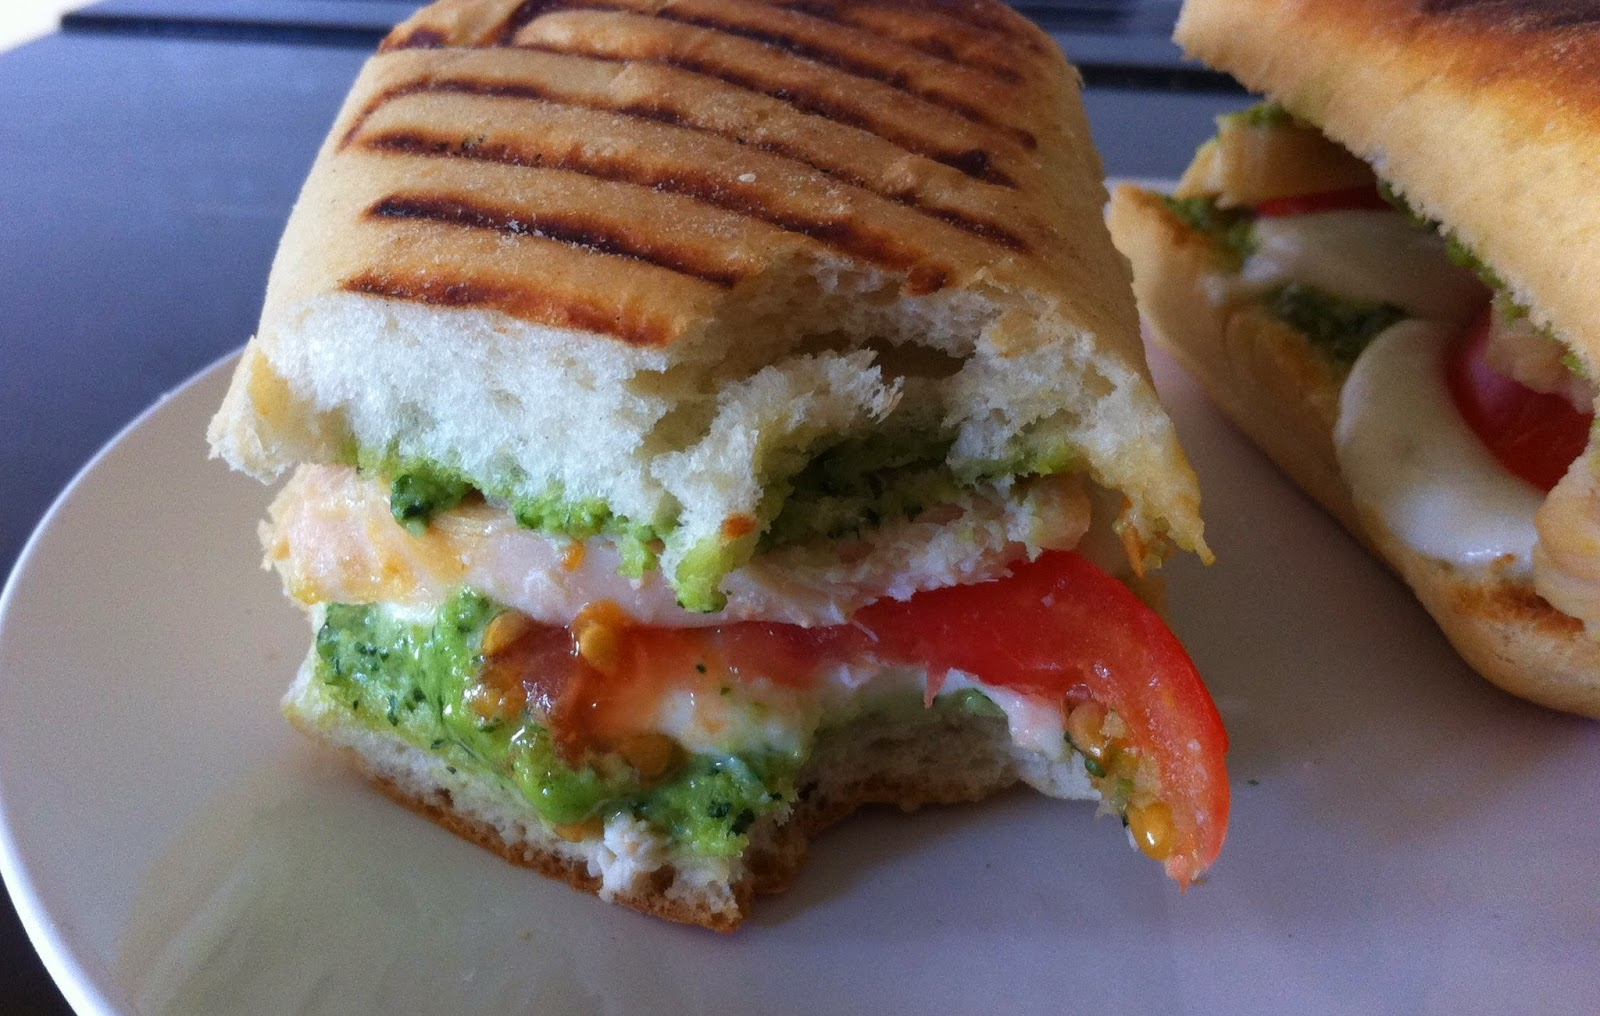 Chicken, Mozzarella and Pesto Panini on a plate